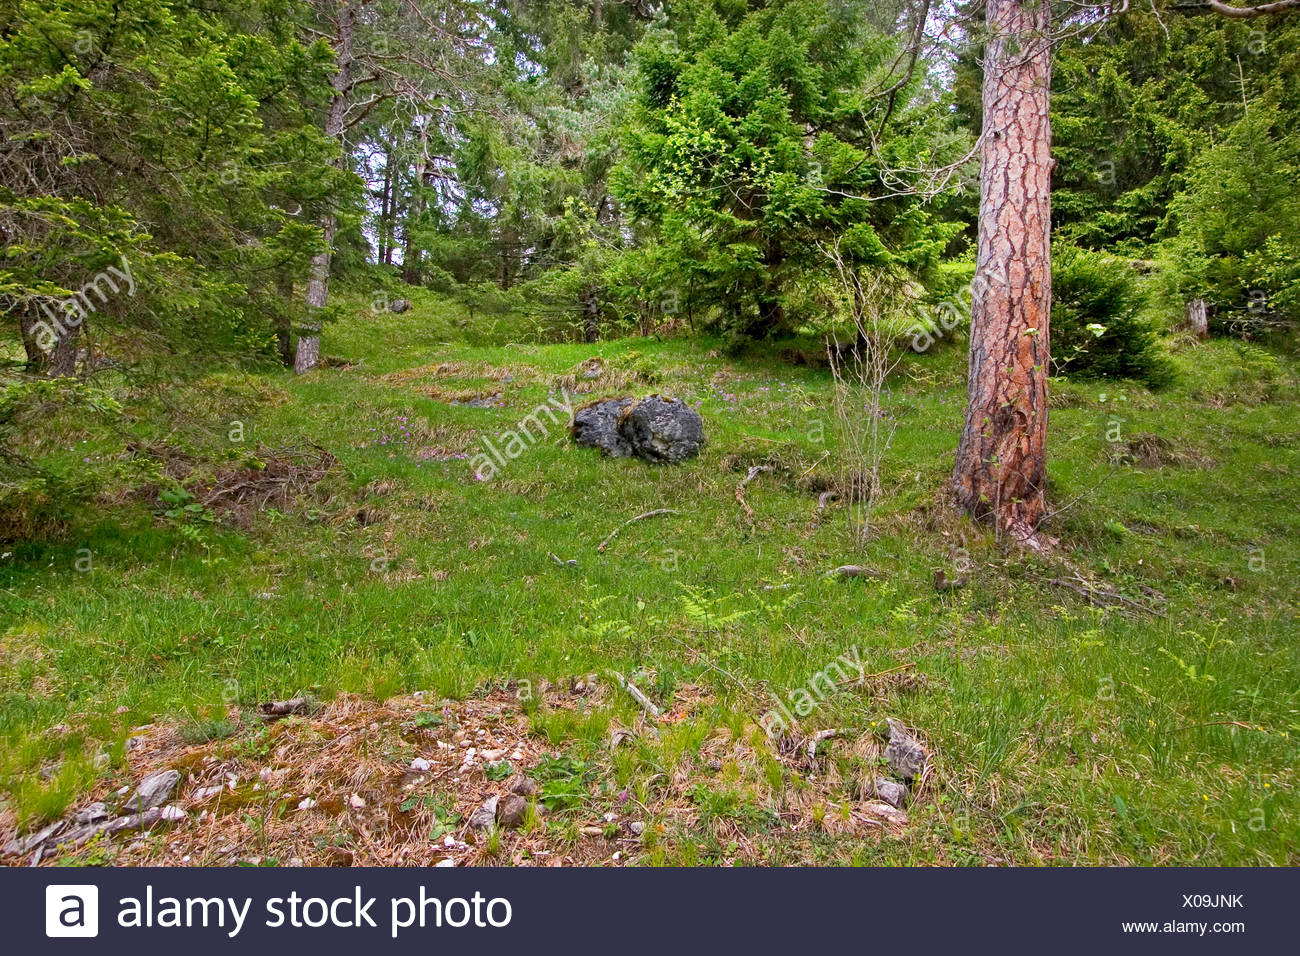 Norway spruce (Picea abies), coniferous forest of spruce and pine, Germany - Stock Image